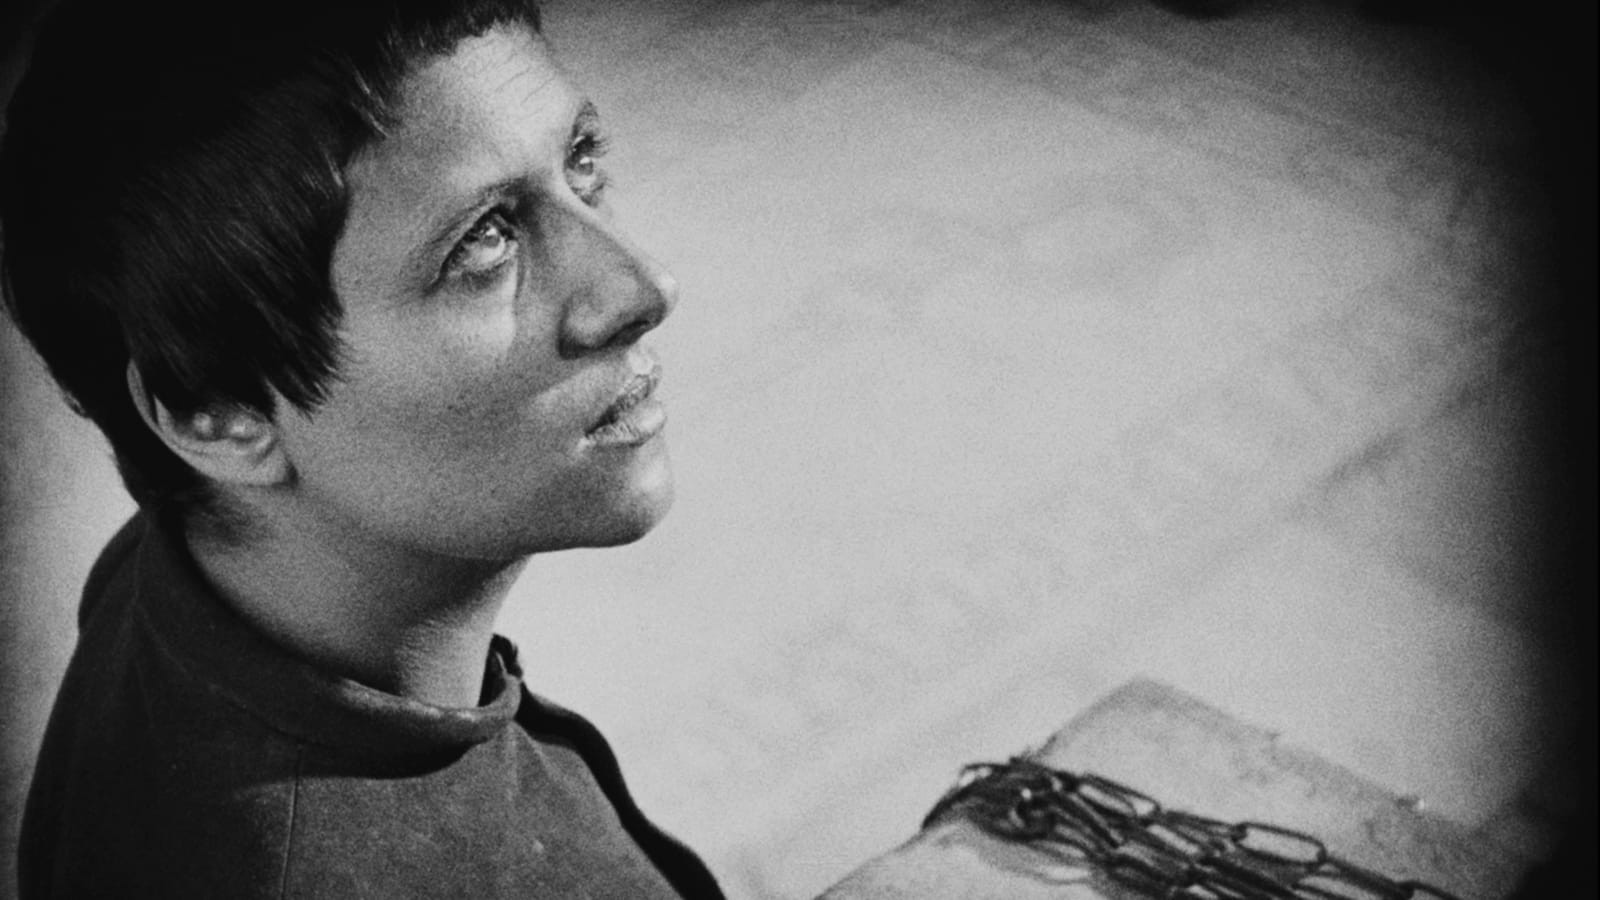 Realized Mysticism in The Passion of Joan of Arc